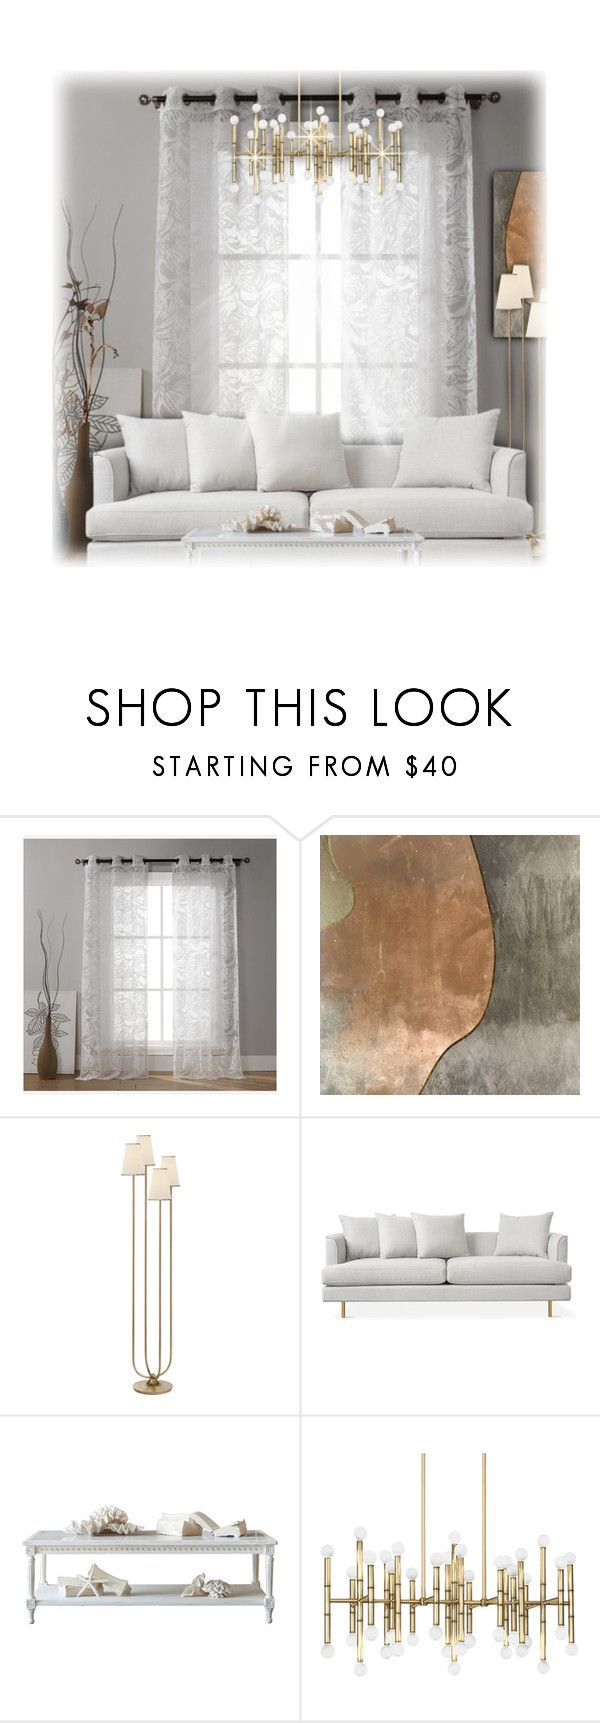 """""""Whispers - Home"""" by nonniekiss ❤ liked on Polyvore featuring interior, interiors, interior design, home, home decor, interior decorating, Duck River Textile, Trilogy, AERIN and Jonathan Adler"""